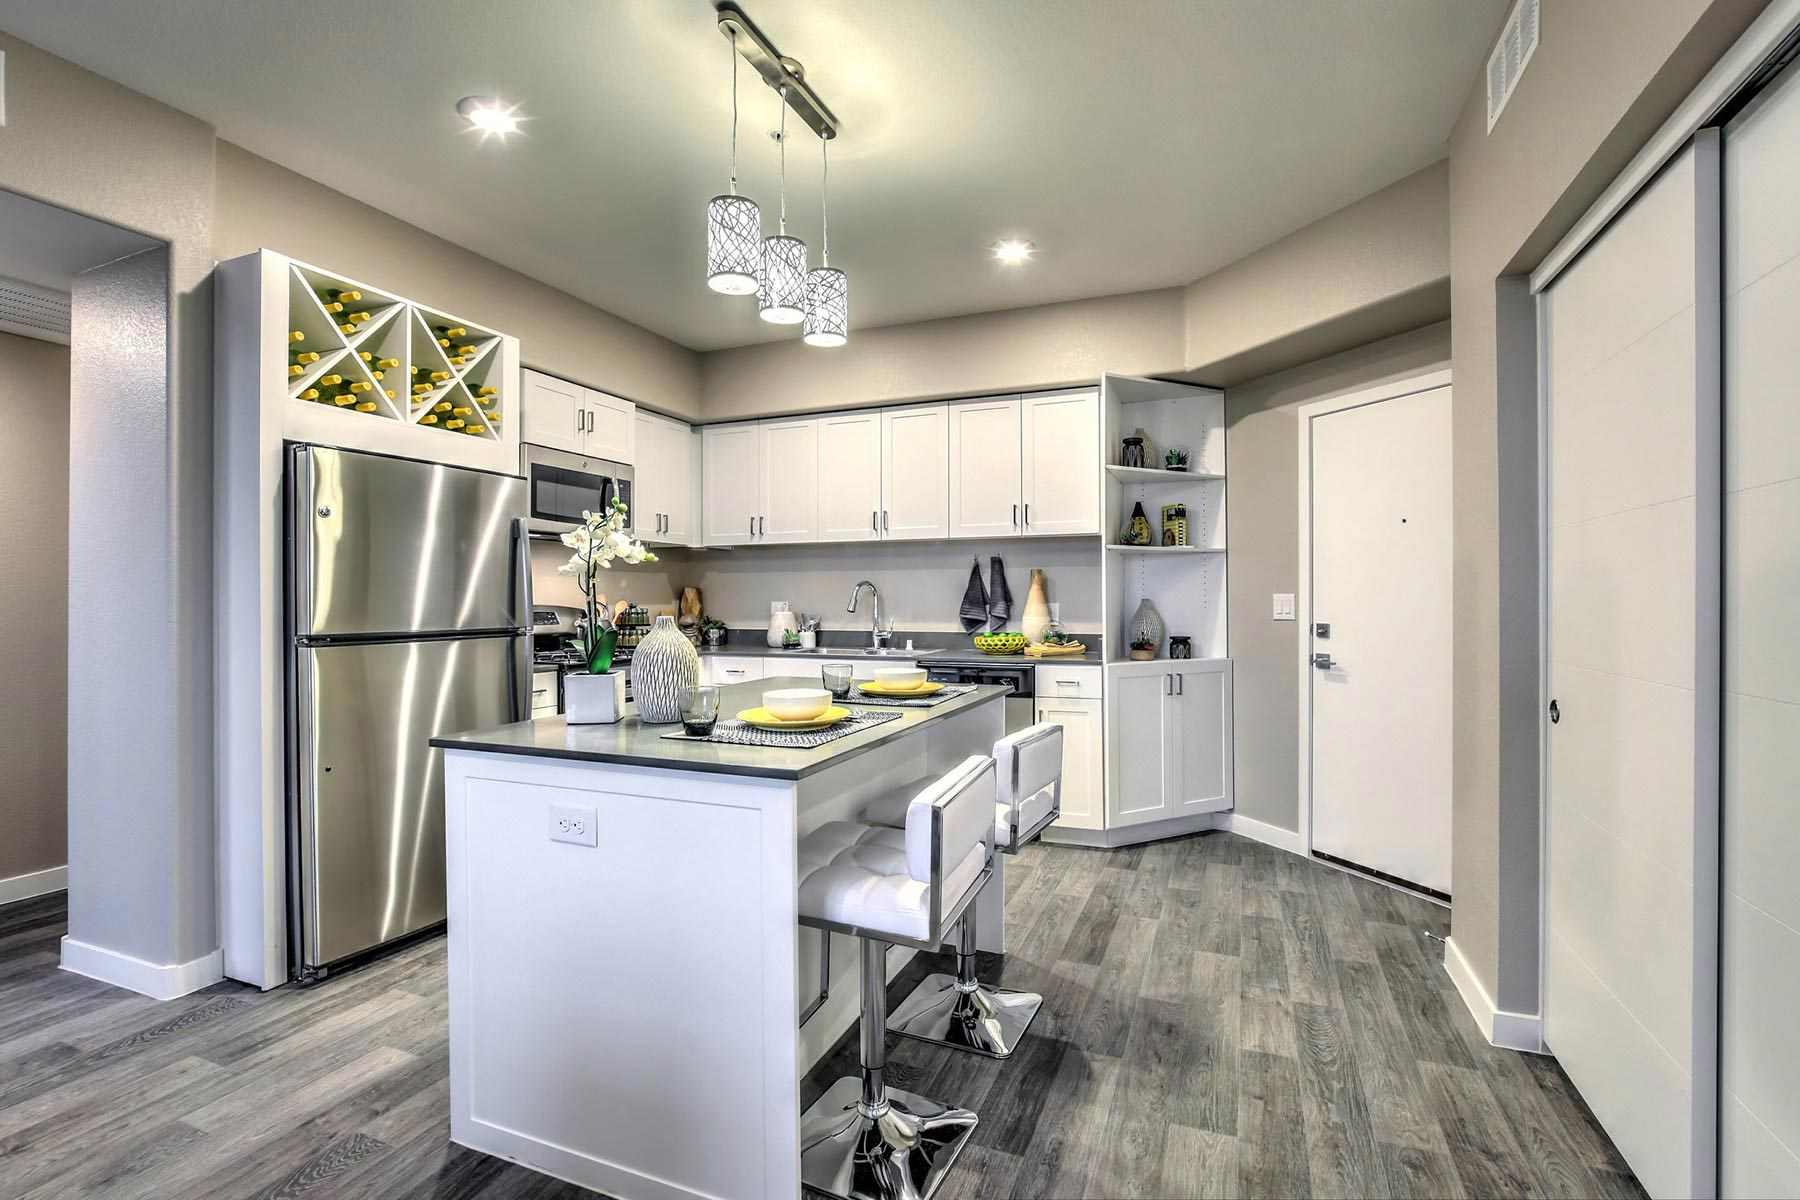 Open-concept kitchen featuring island with bar seating, quartz countertops, wood-style flooring, modern cabinetry, and Energy Star GE appliances. There is pendant lighting, wine storage, and a closet on the right. The entrance to the apartment beings in the kitchen.